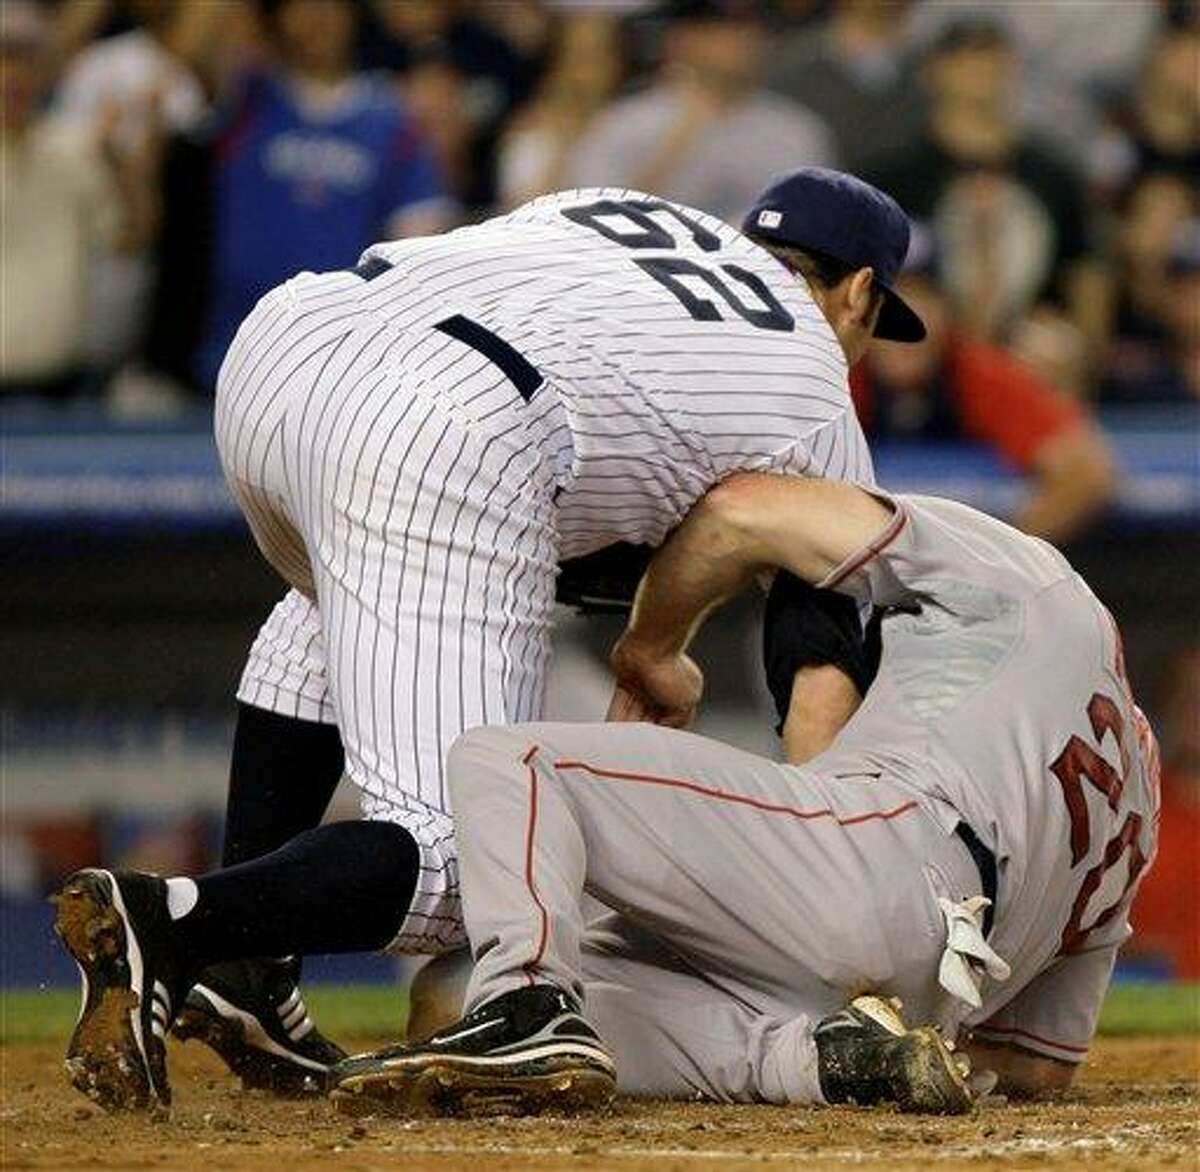 Boston Red Sox's Kevin Youkilis, right, gets tangled up with New York Yankees pitcher Joba Chamberlain as he scores on Chamberlain's fifth-inning wild pitch in their baseball game at Yankee Stadium in New York, Sunday, July 6, 2008. (AP Photo/Kathy Willens)